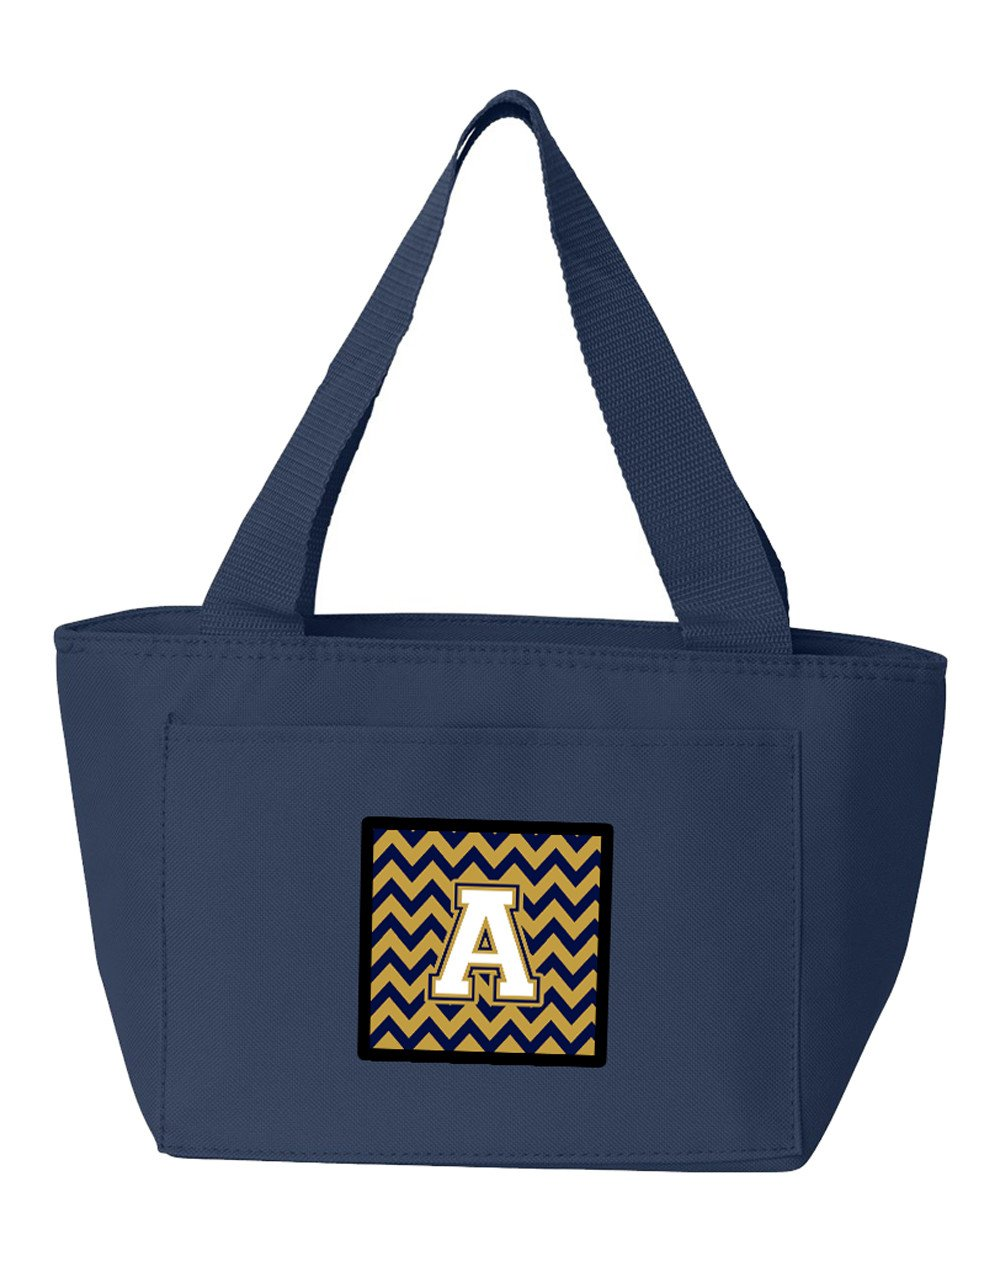 Letter A Chevron Navy Blue and Gold Lunch Bag CJ1057-ANA-8808 by Caroline's Treasures